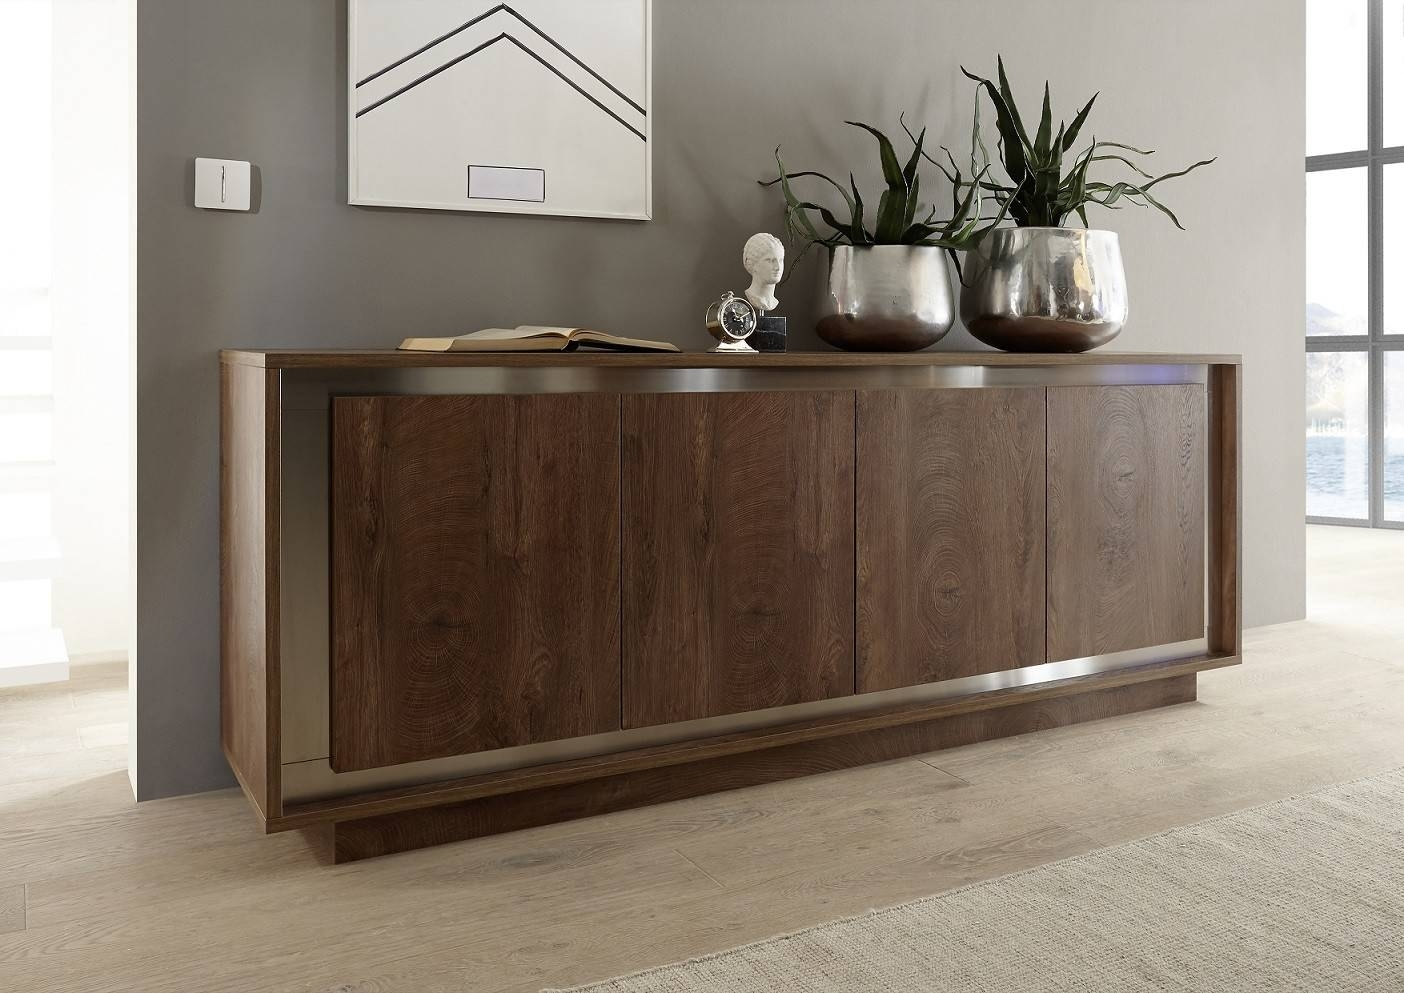 Amber Modern Sideboard In Oak Cognac Finish With Inlays Pertaining To Most Recent Bespoke Sideboards (#1 of 15)